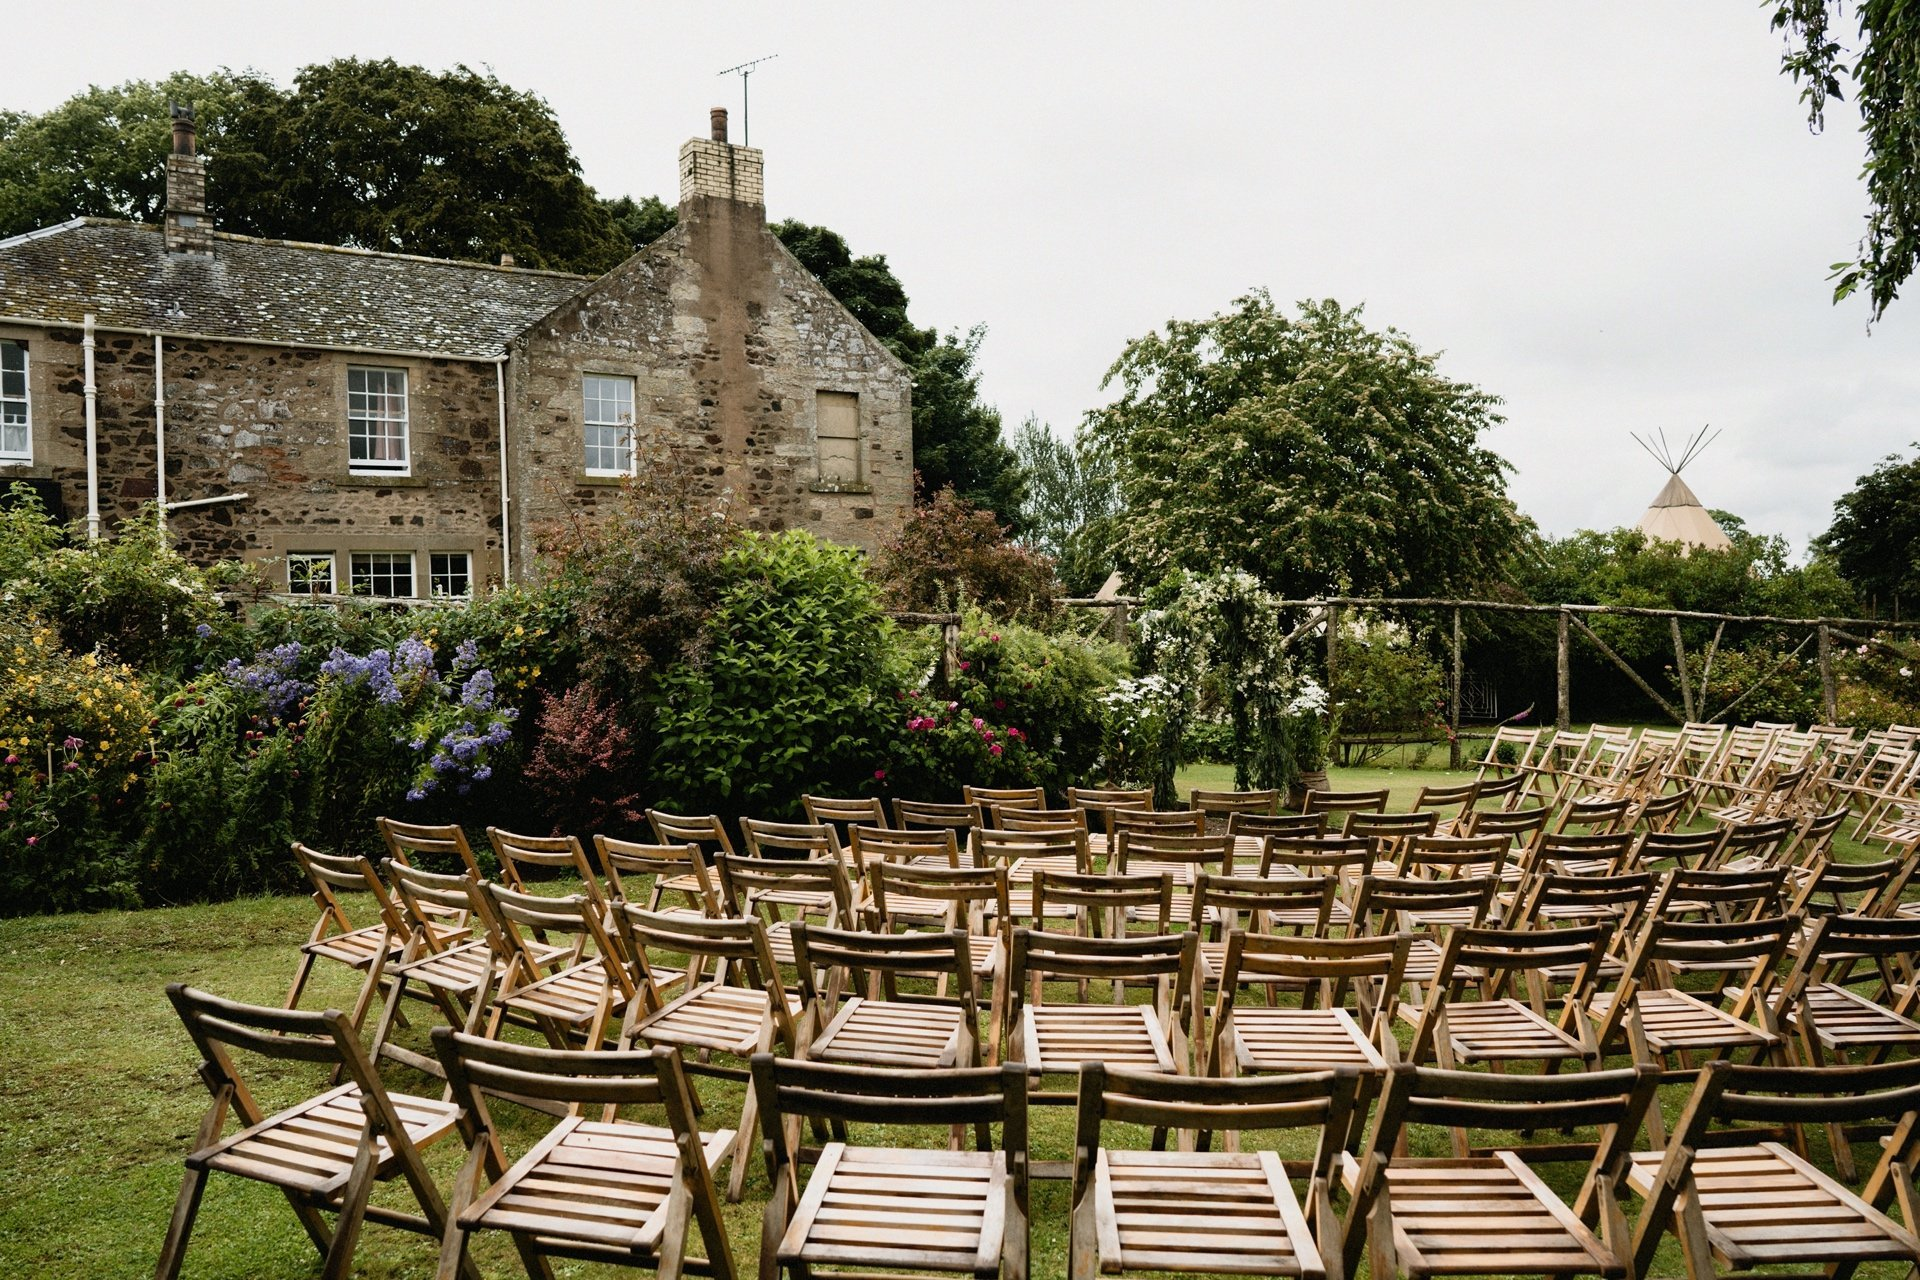 Chairs set for a garden ceremony outside a farmhouse with tipi in the background